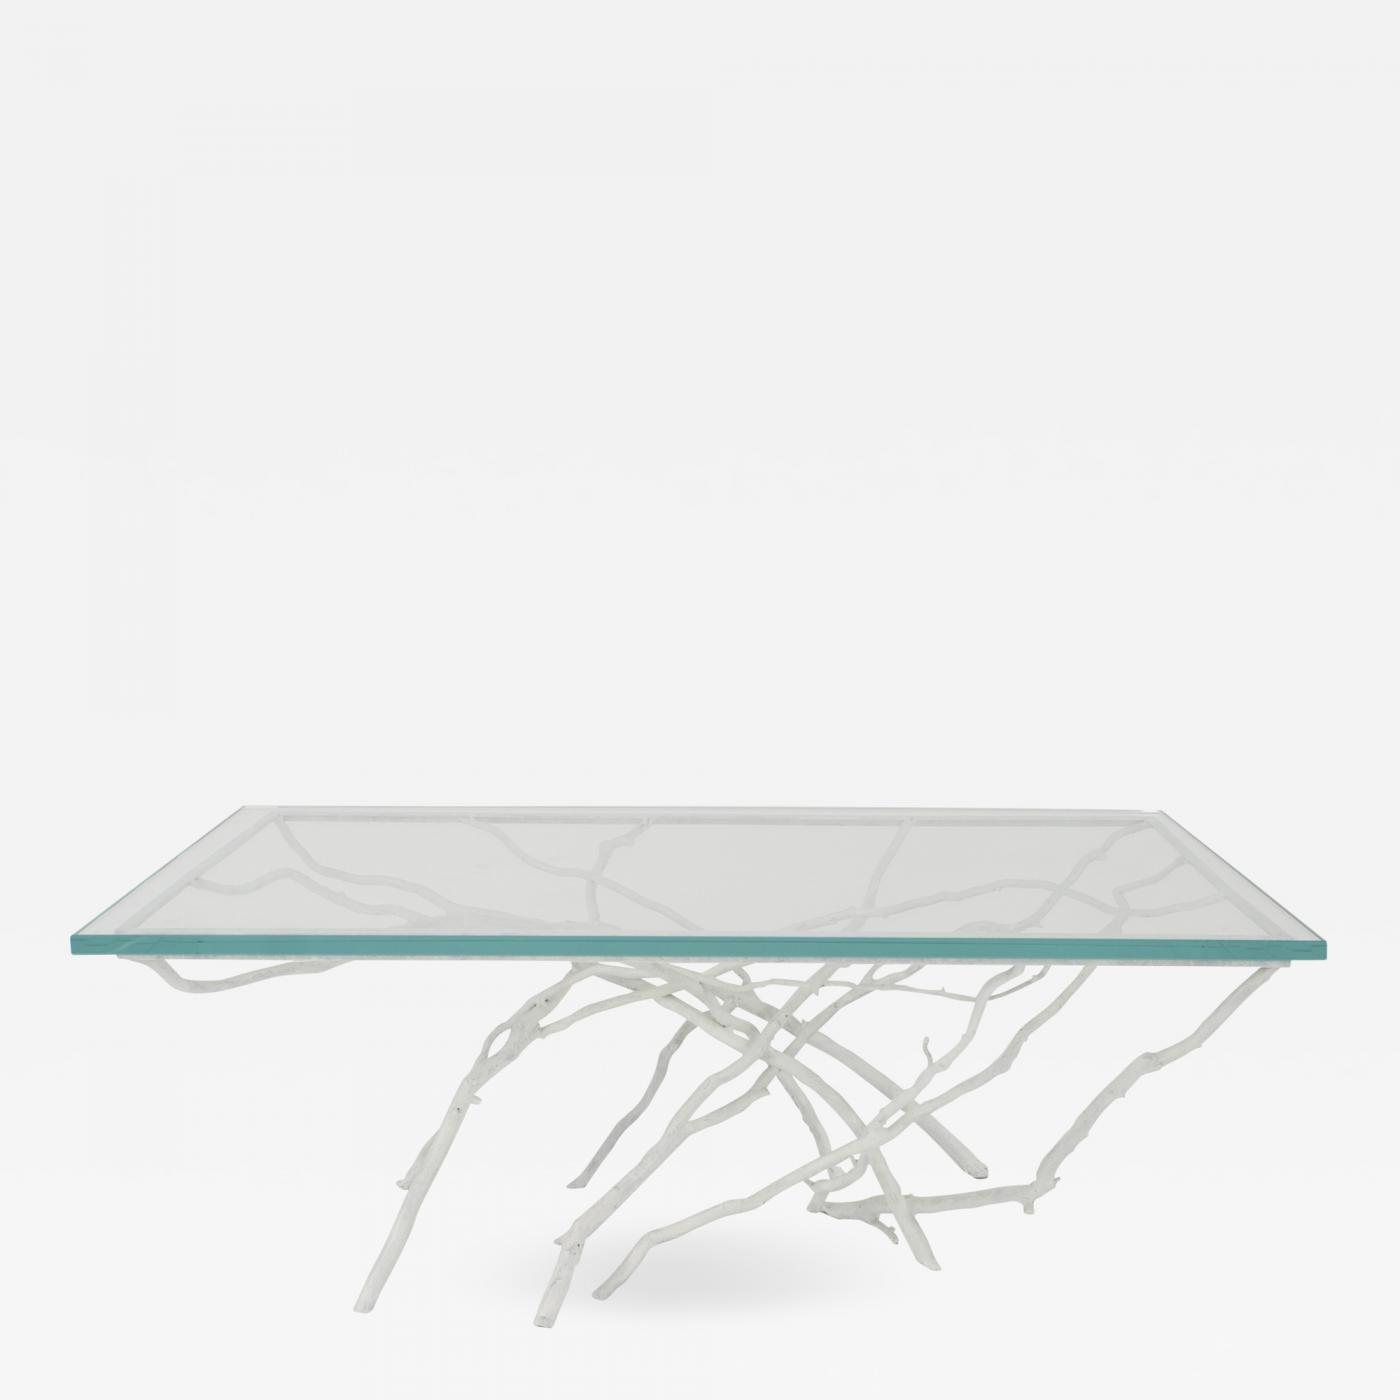 Miraculous Joan Sherman Contemporary White Painted Iron Faux Twig Design Rectangular Coffee Table Machost Co Dining Chair Design Ideas Machostcouk